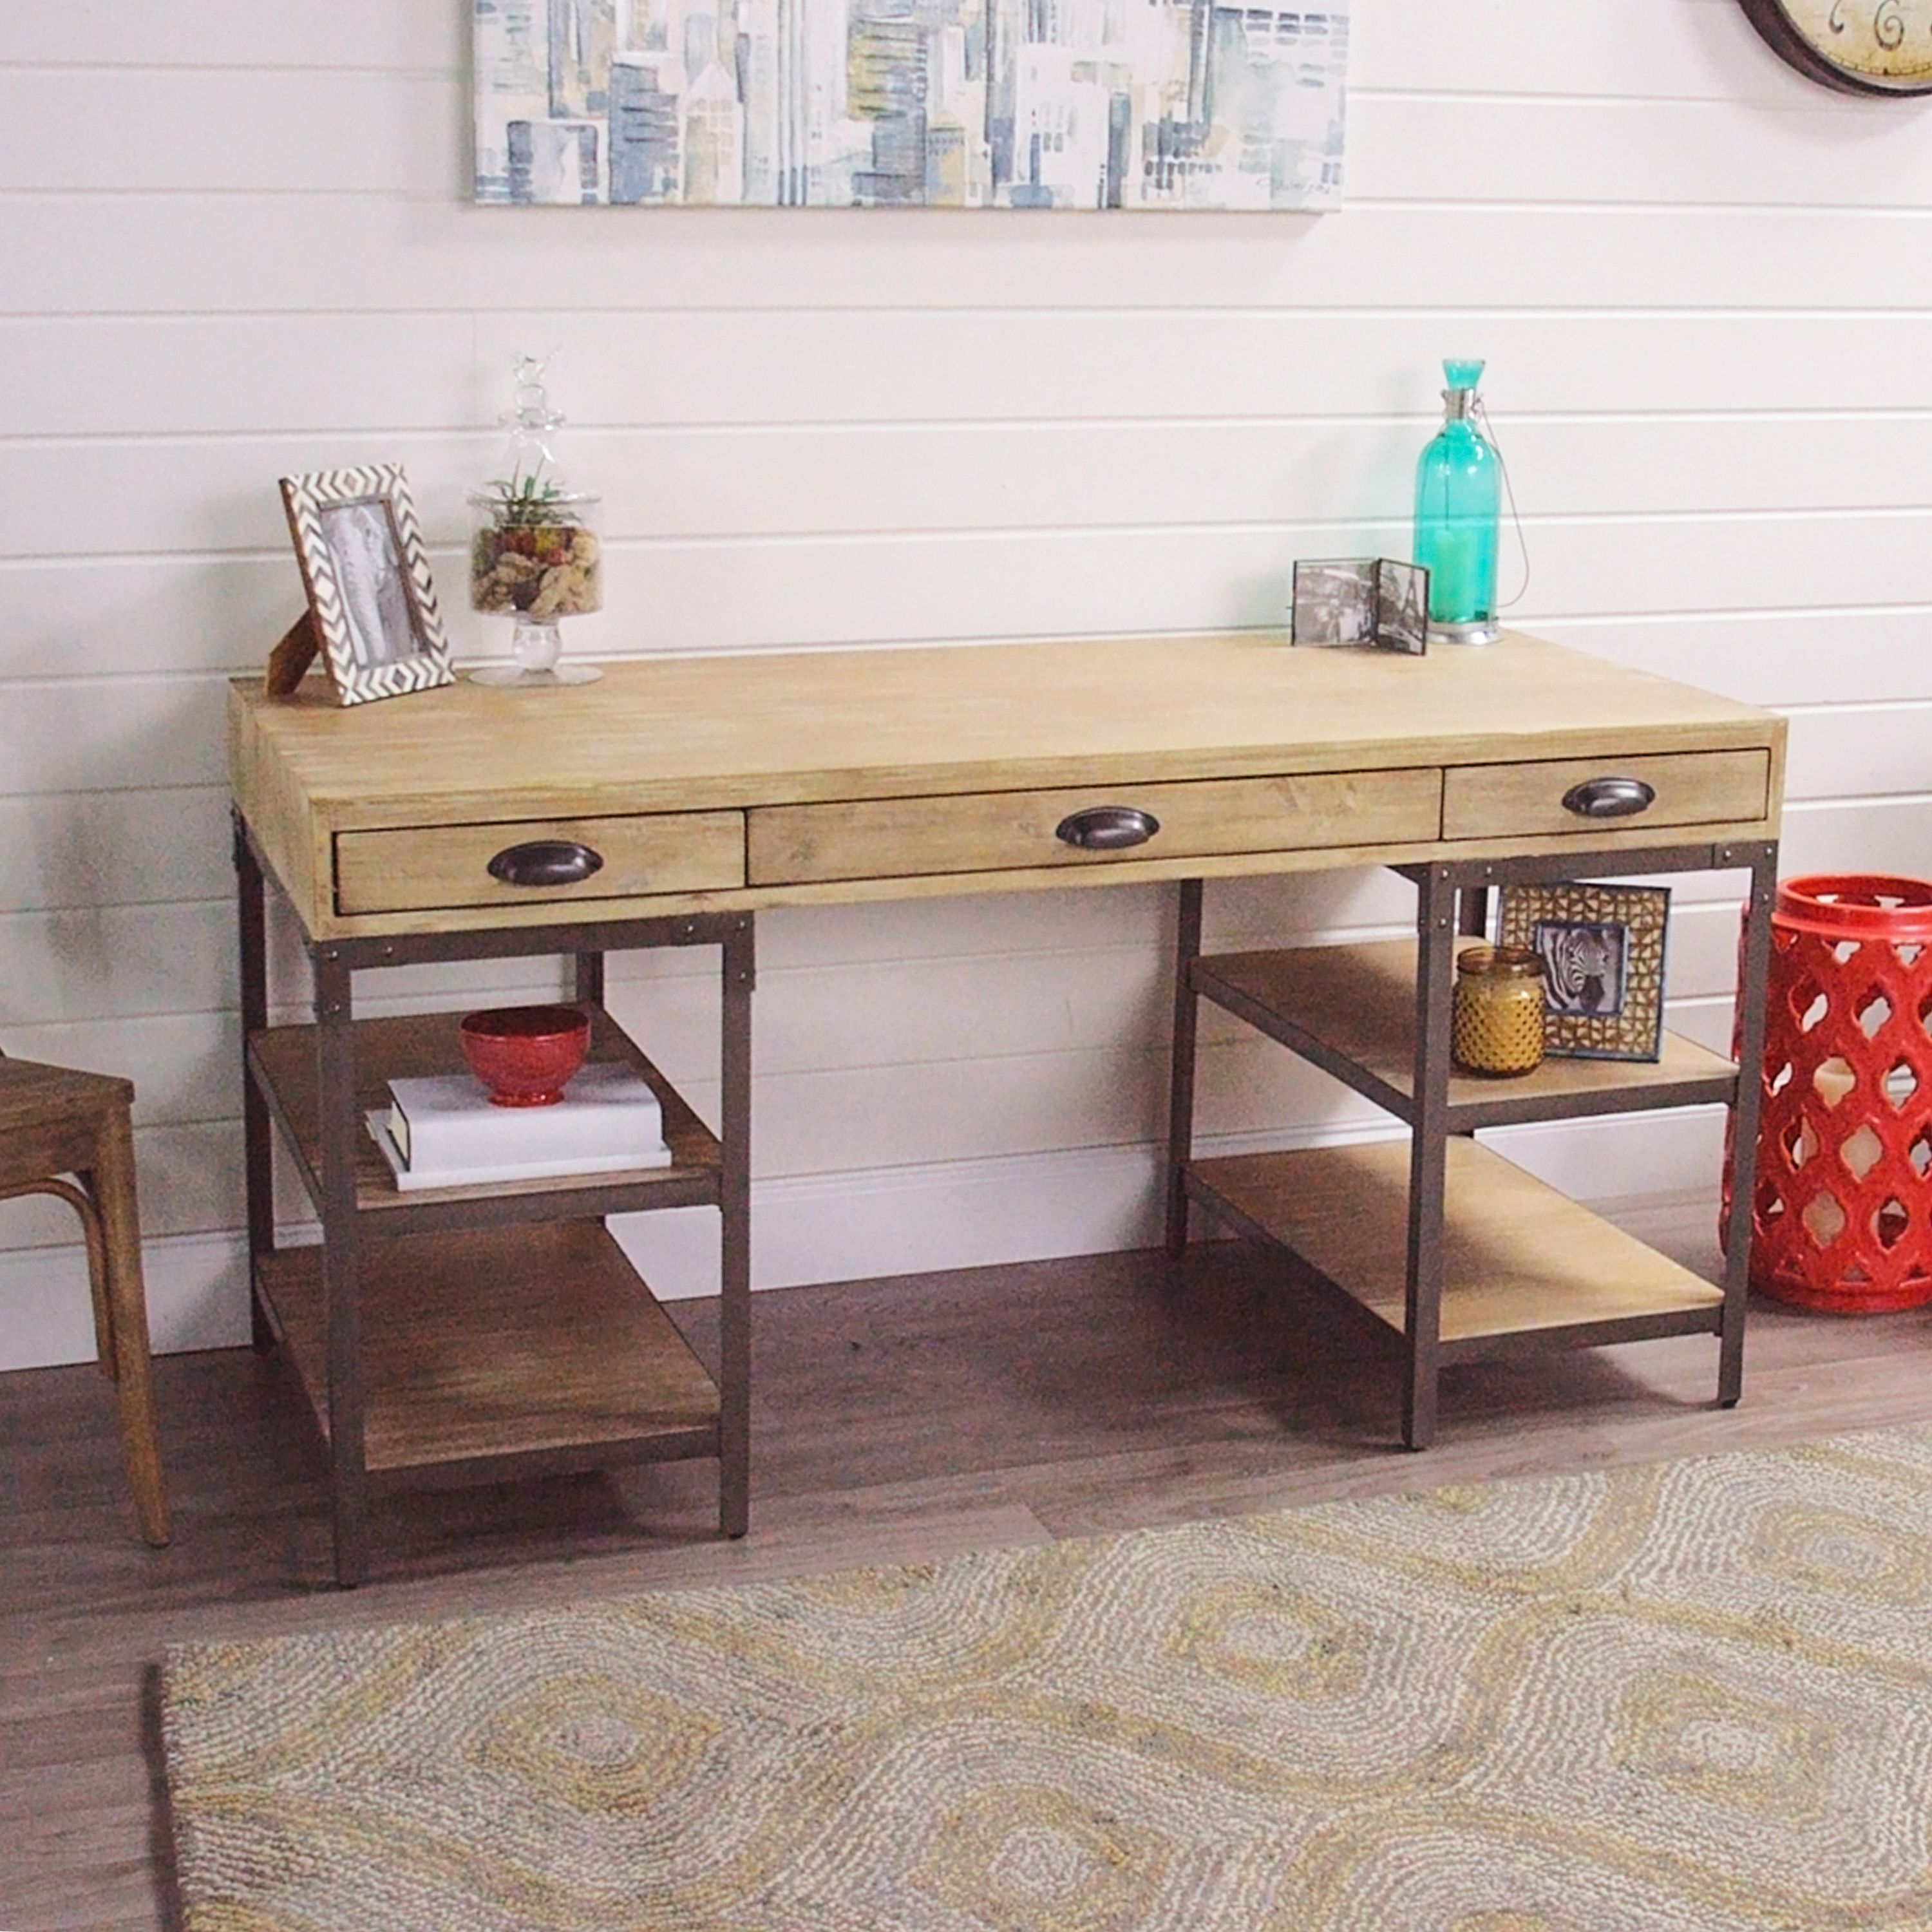 Wood And Metal Teagan Desk At Home Store Home Desk Home